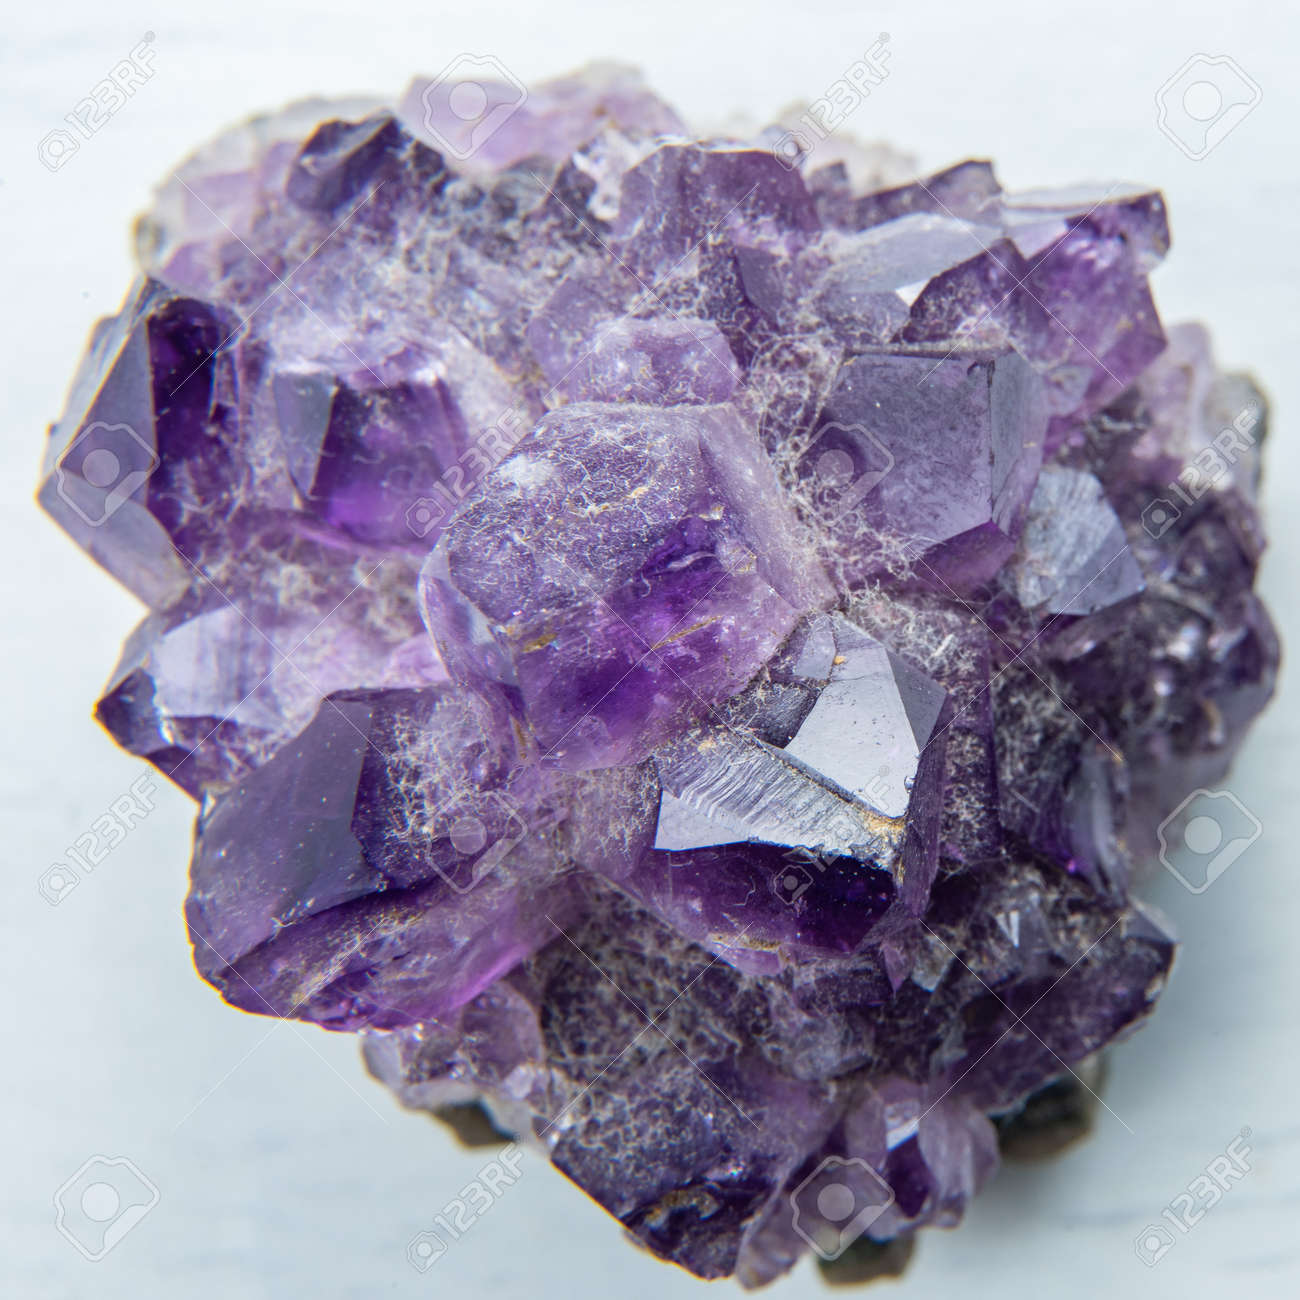 Amethyst mineral gemstone, macro view on a white background - 146004212